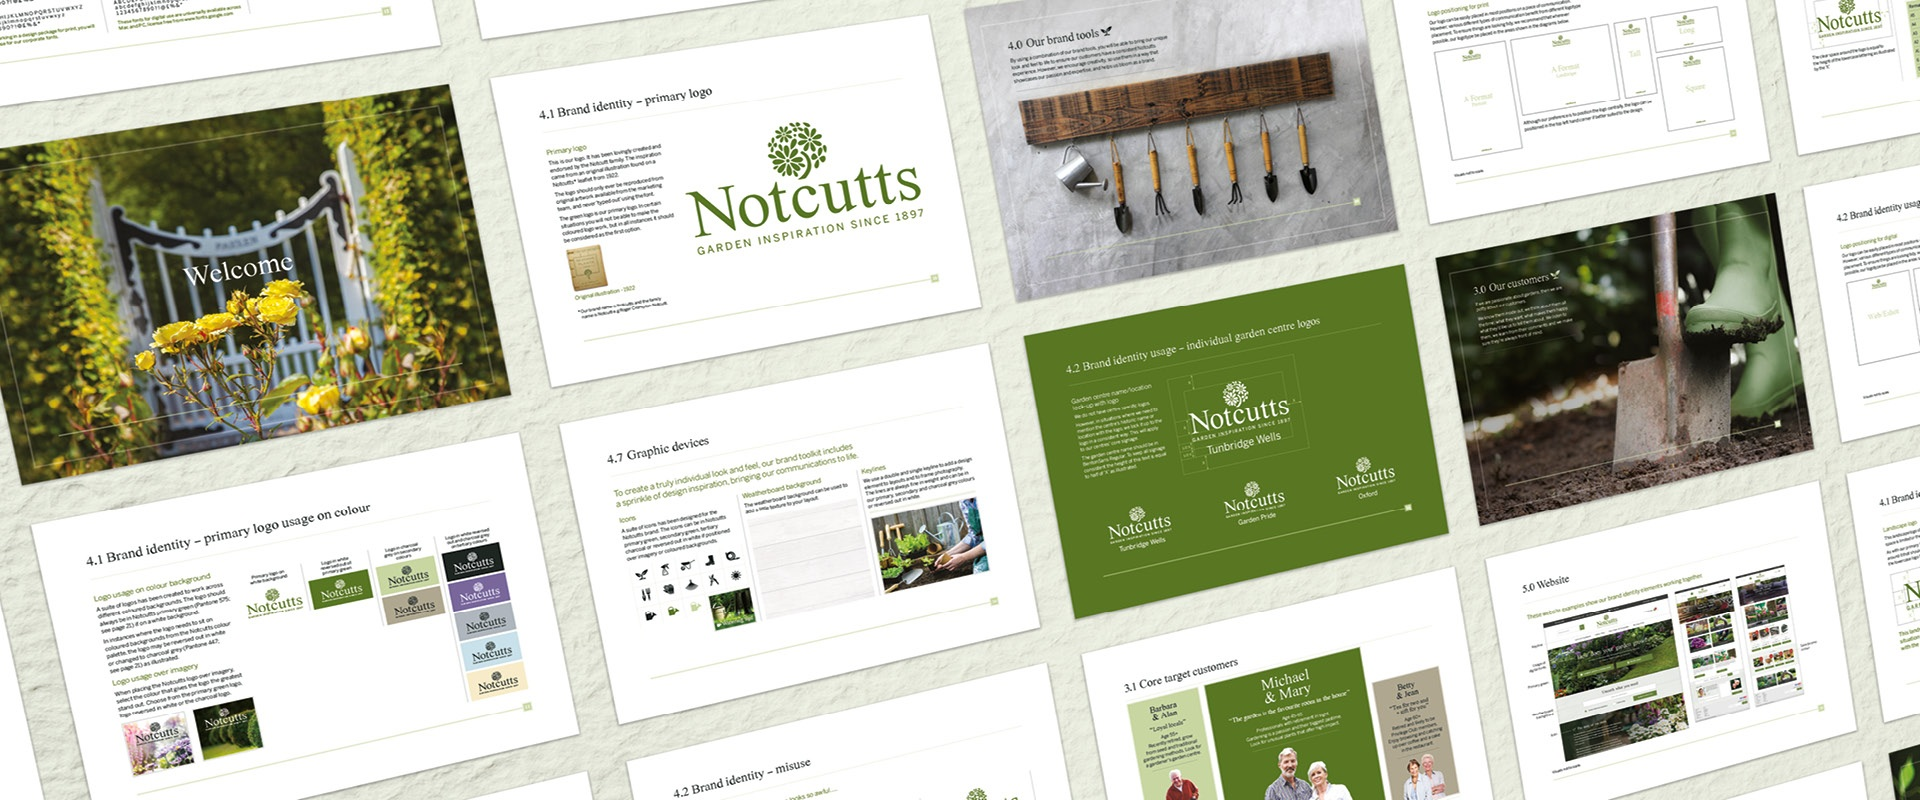 Notcutts